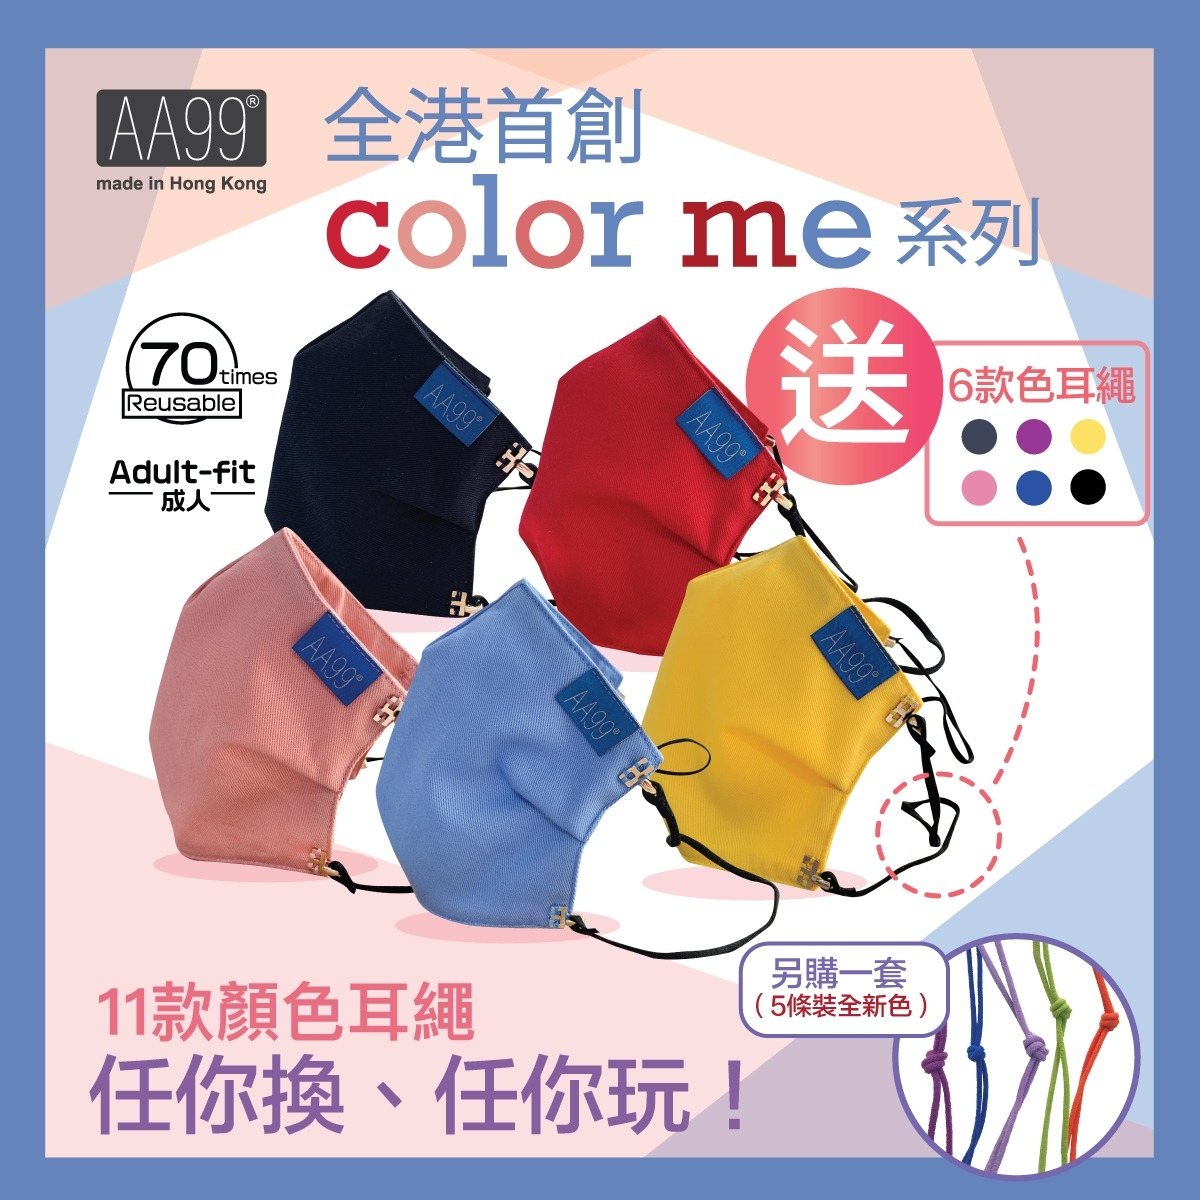 ColorMe AA99